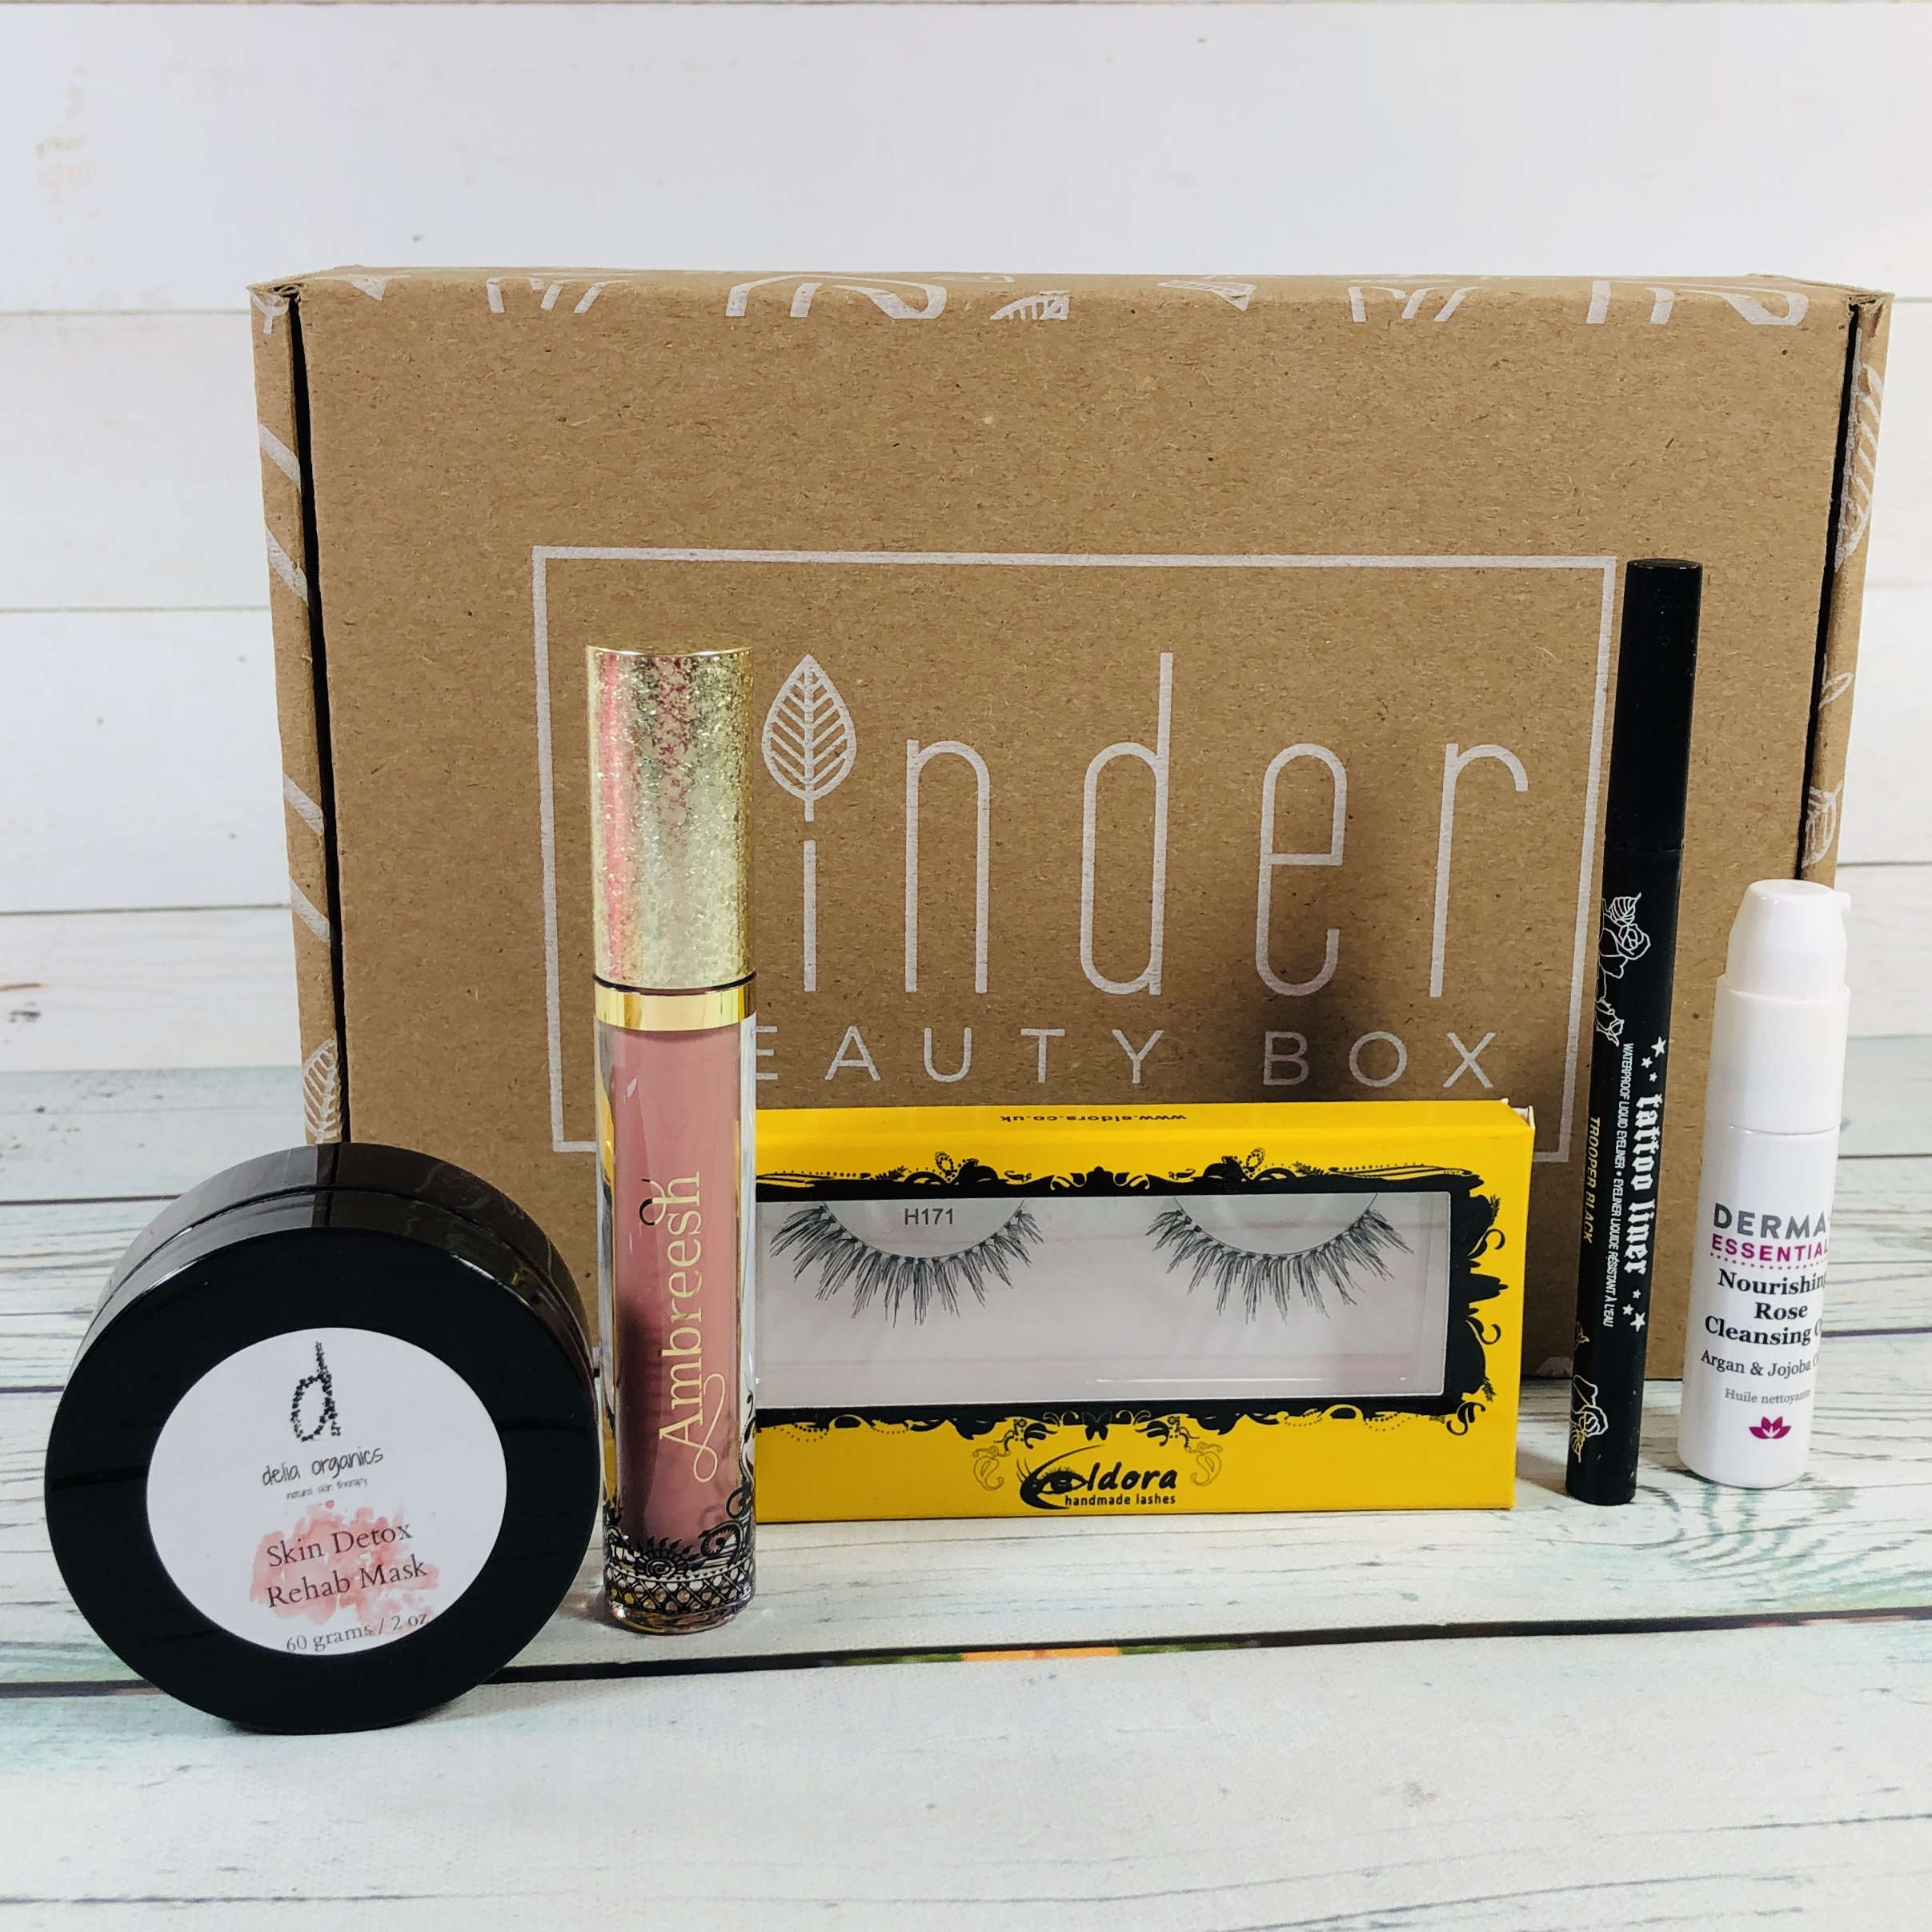 Kinder Beauty Box February 2019 Box Review + Coupon!